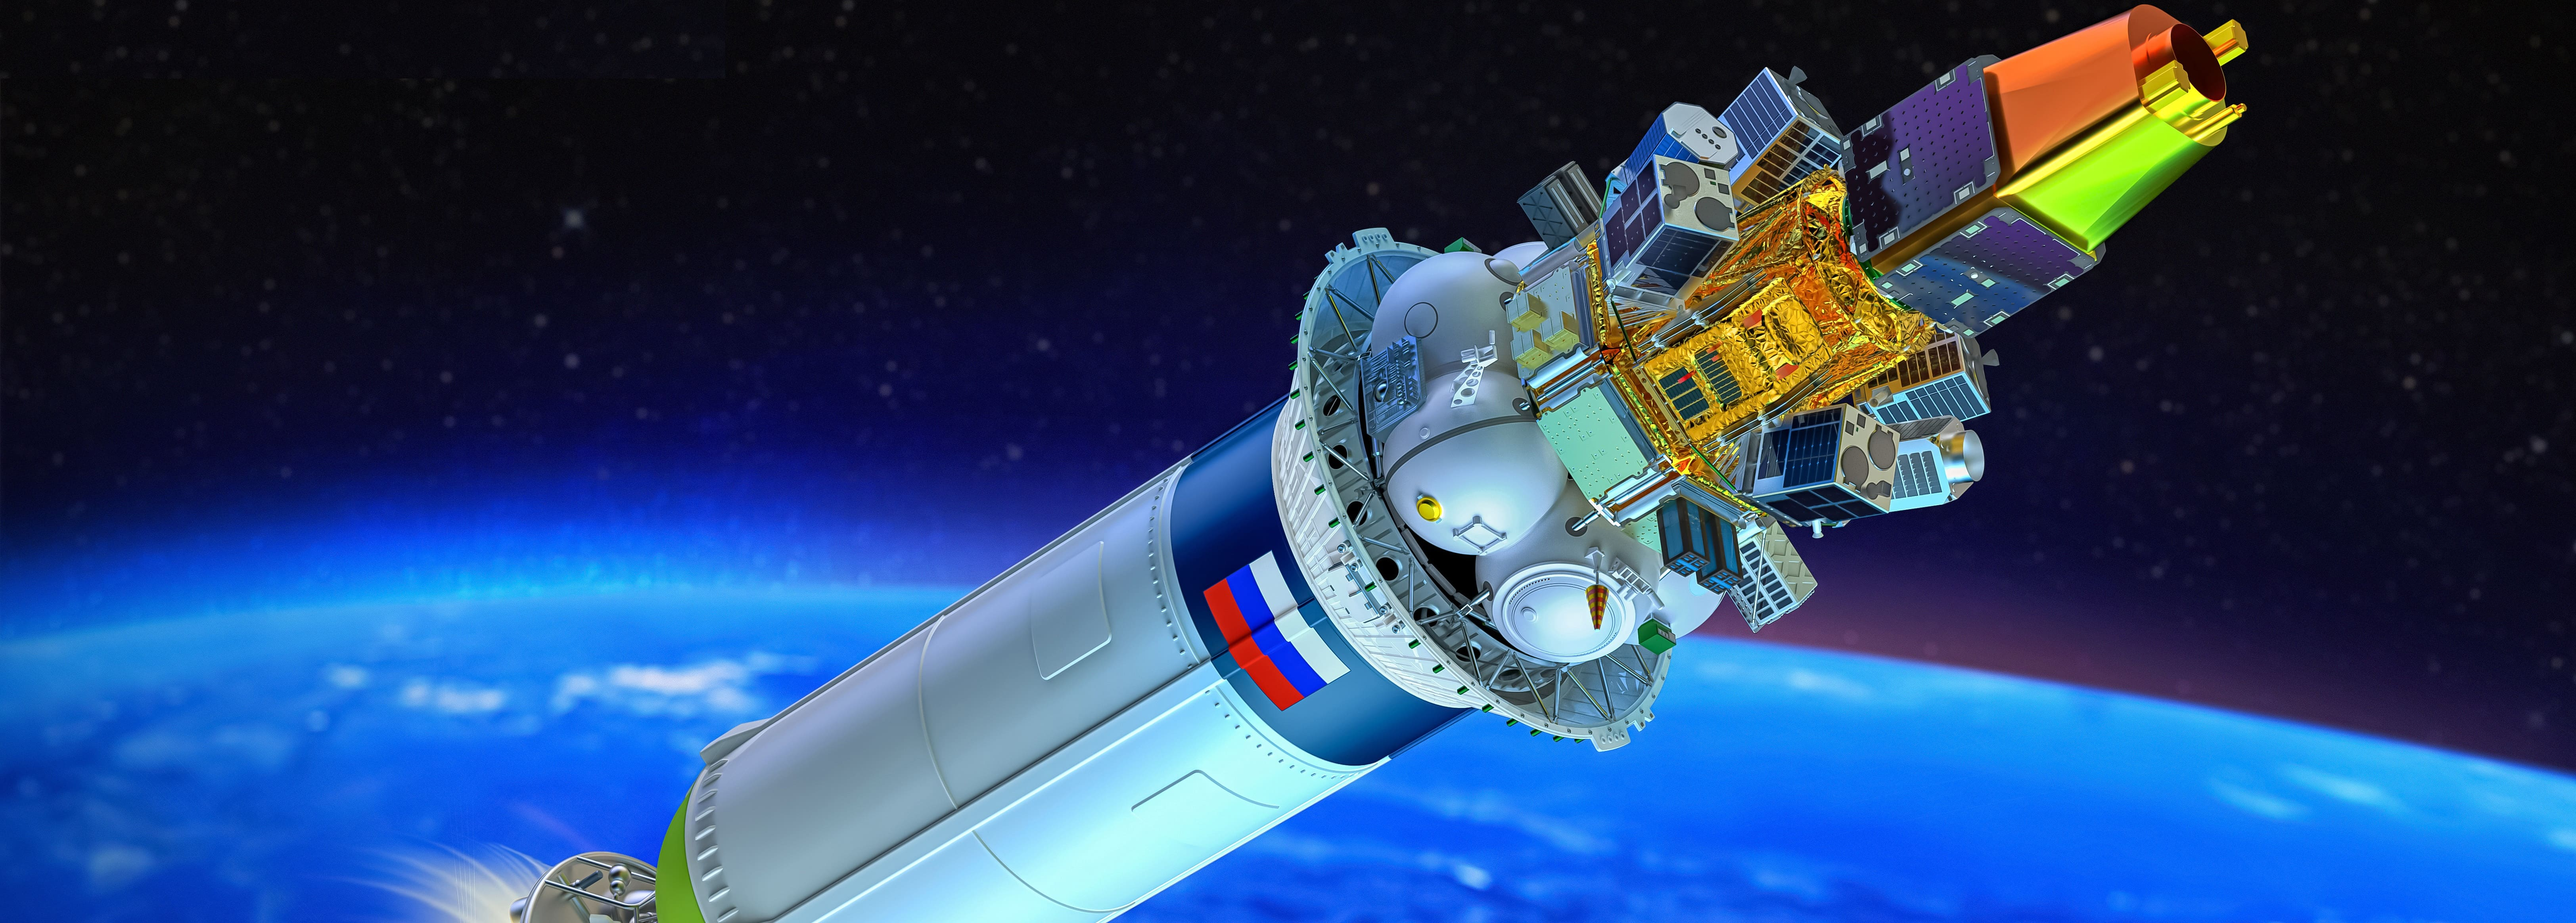 Render of the CAS500-1 & rideshare payloads on the Soyuz upper stage